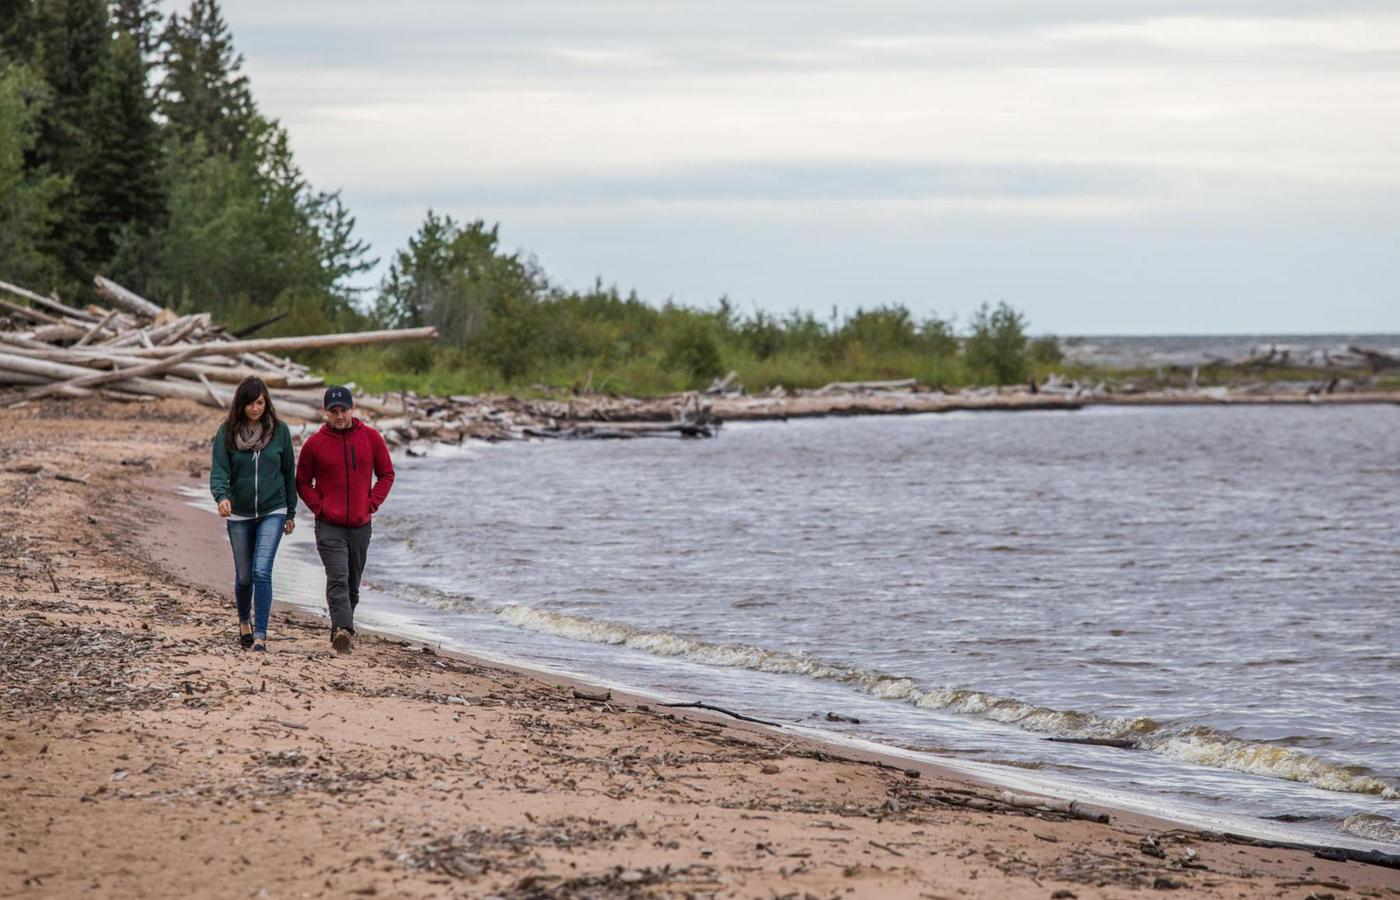 A man and woman walk along the sandy south shore of Great Slave Lake